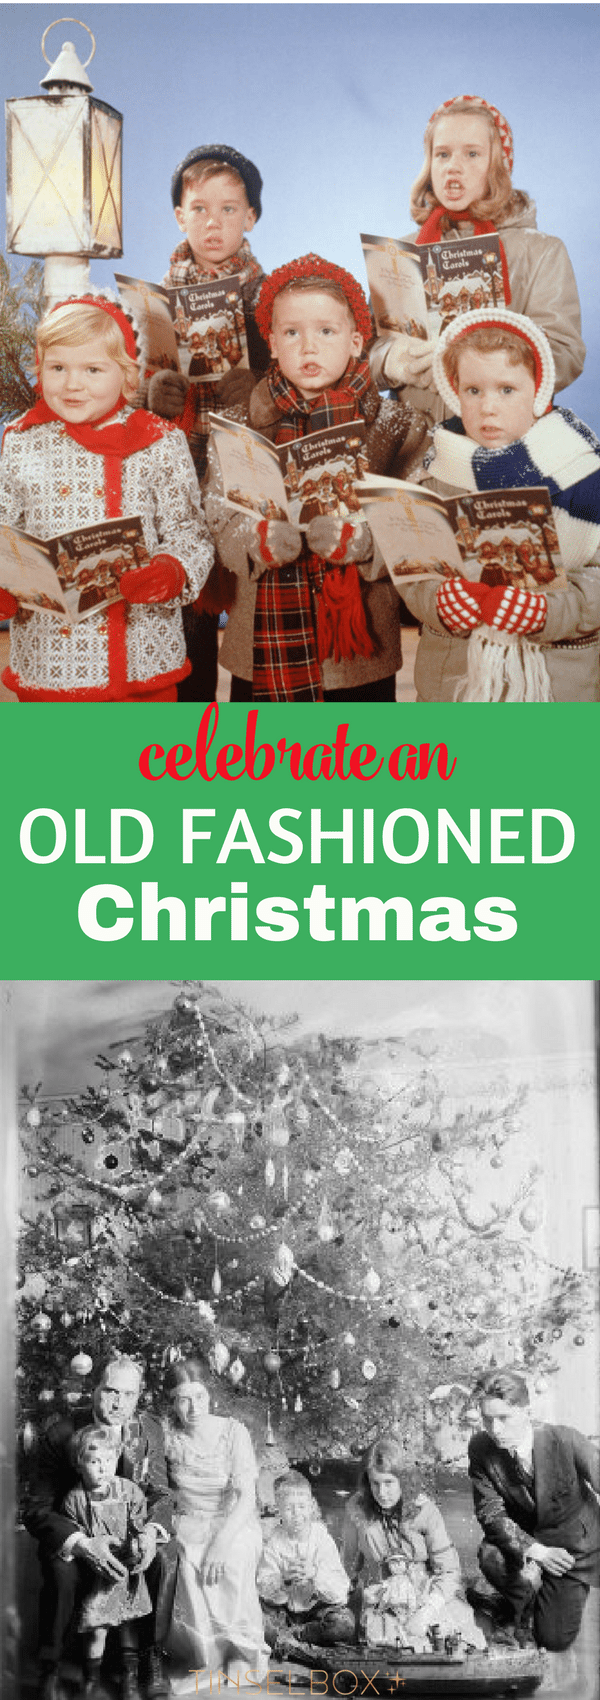 If you want to celebrate a #vintage old fashioned #Christmas, it will create memories that will last a lifetime. See what we mean about these old #holiday #traditions.